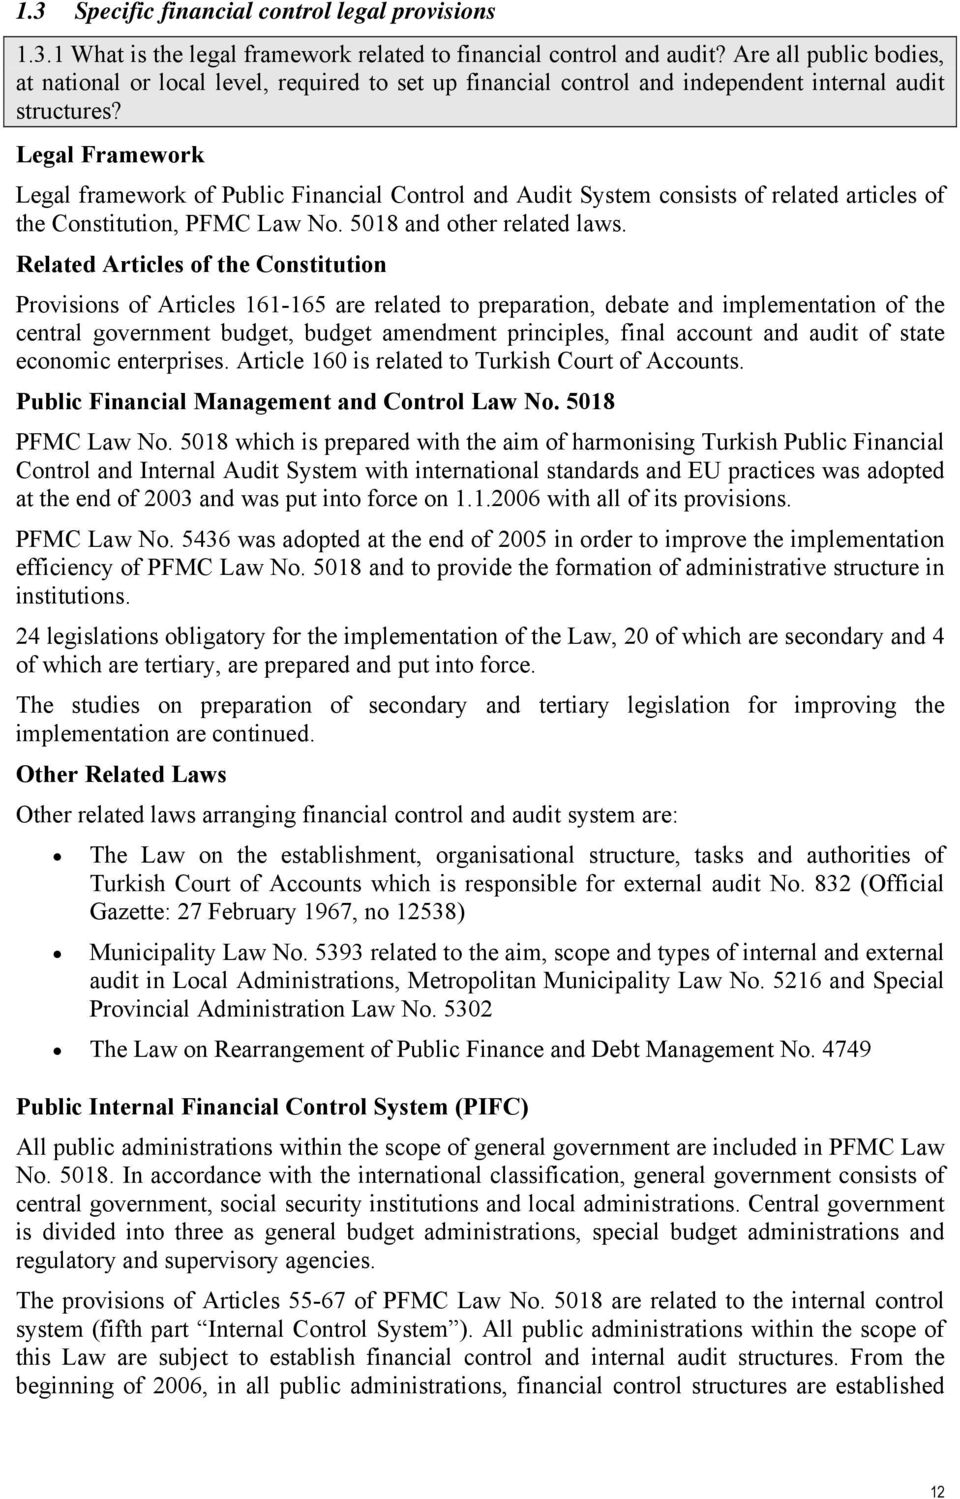 Legal Framework Legal framework of Public Financial Control and Audit System consists of related articles of the Constitution, PFMC Law No. 5018 and other related laws.